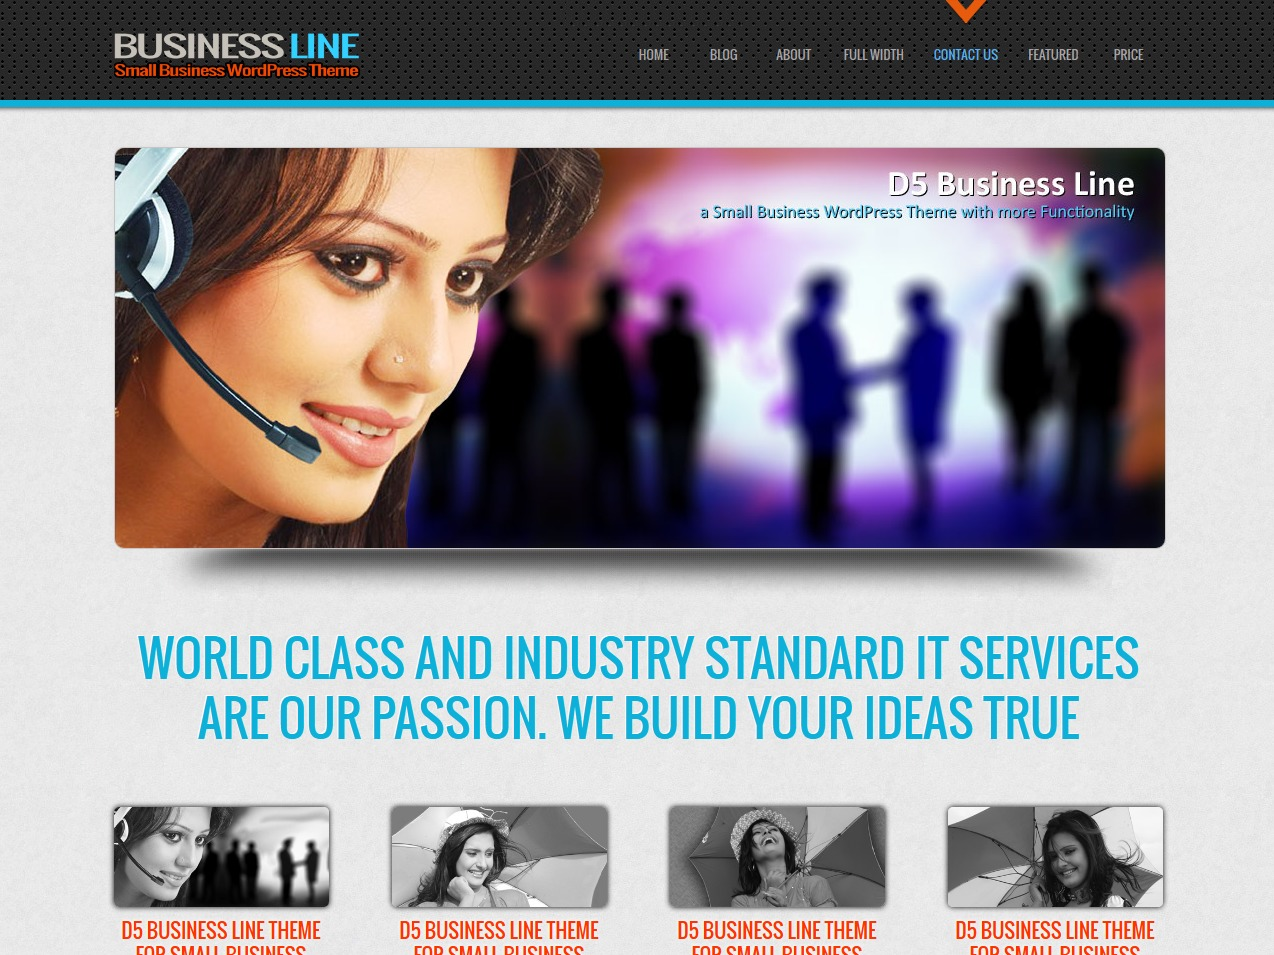 D5 Business Line business WordPress theme